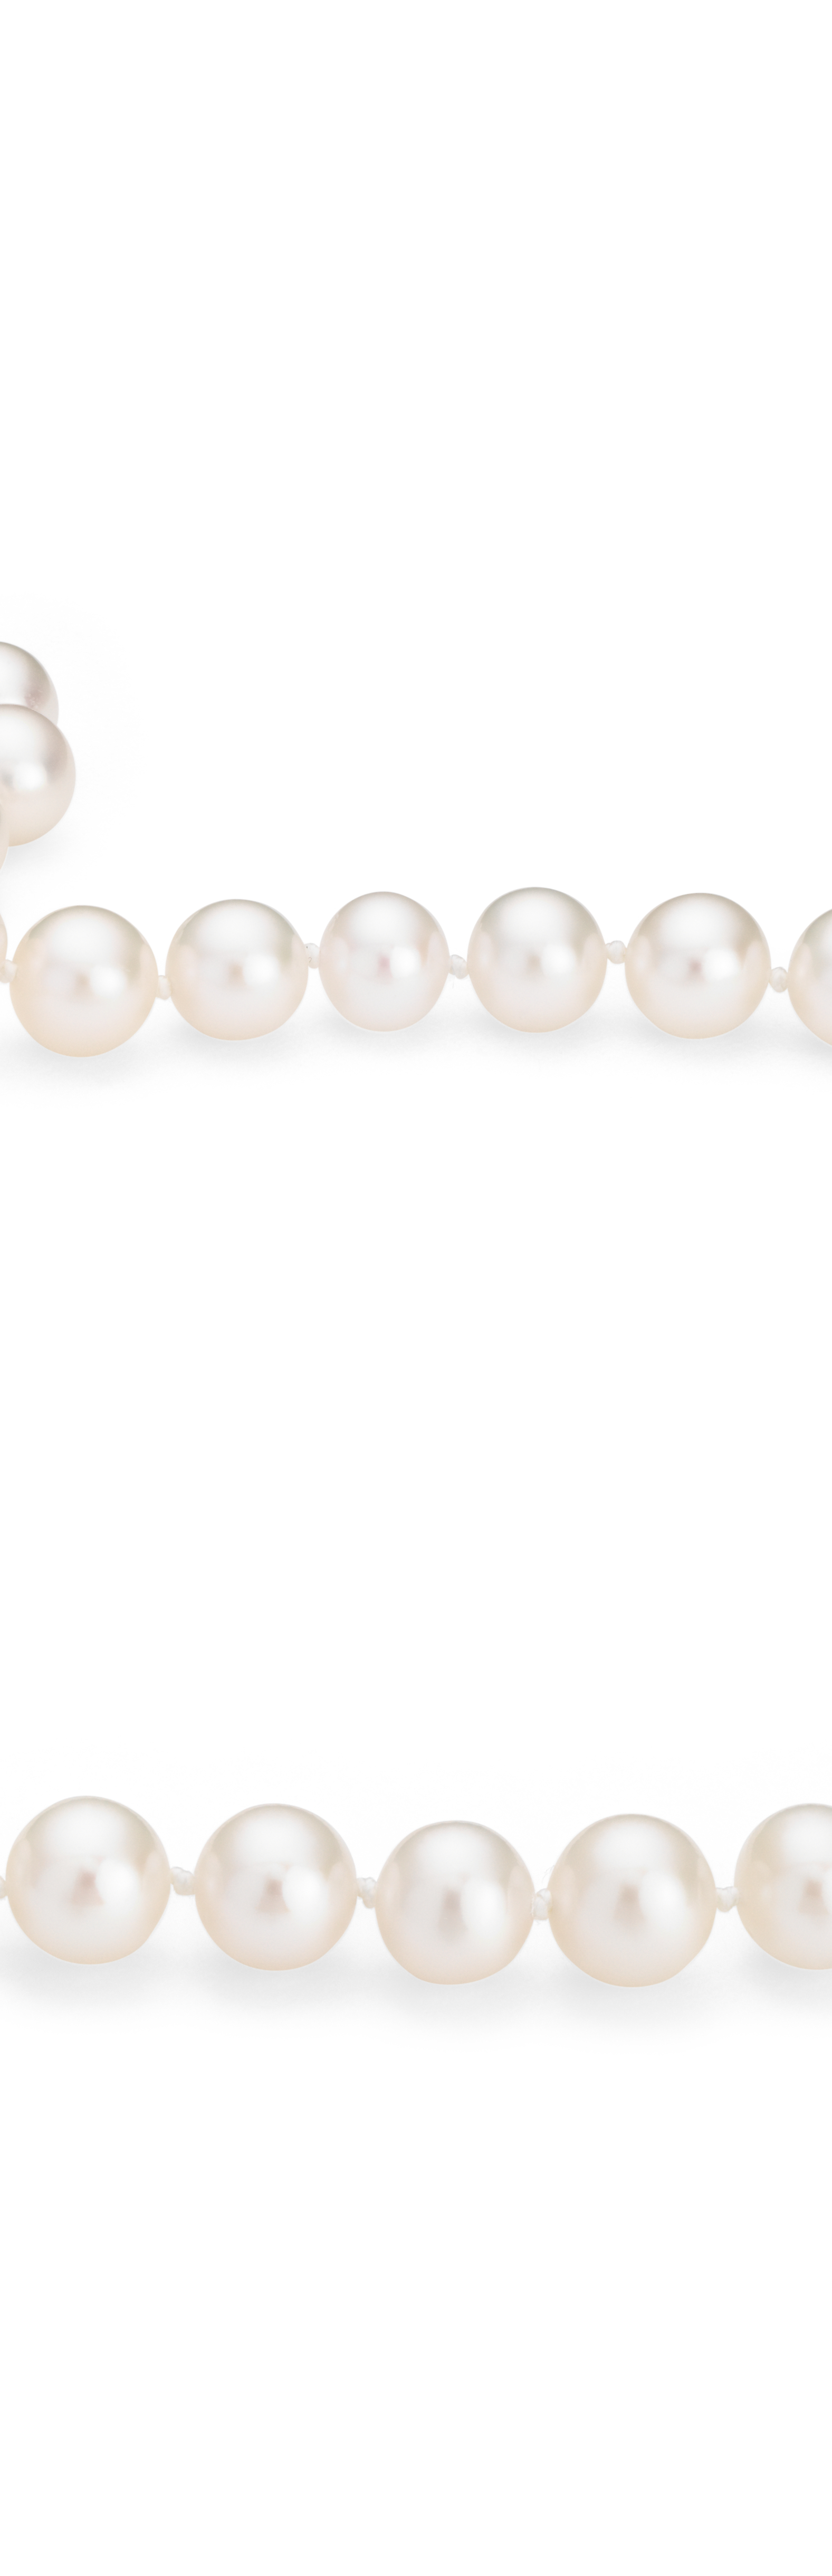 Freshwater Pearl Strands with 14k White Gold